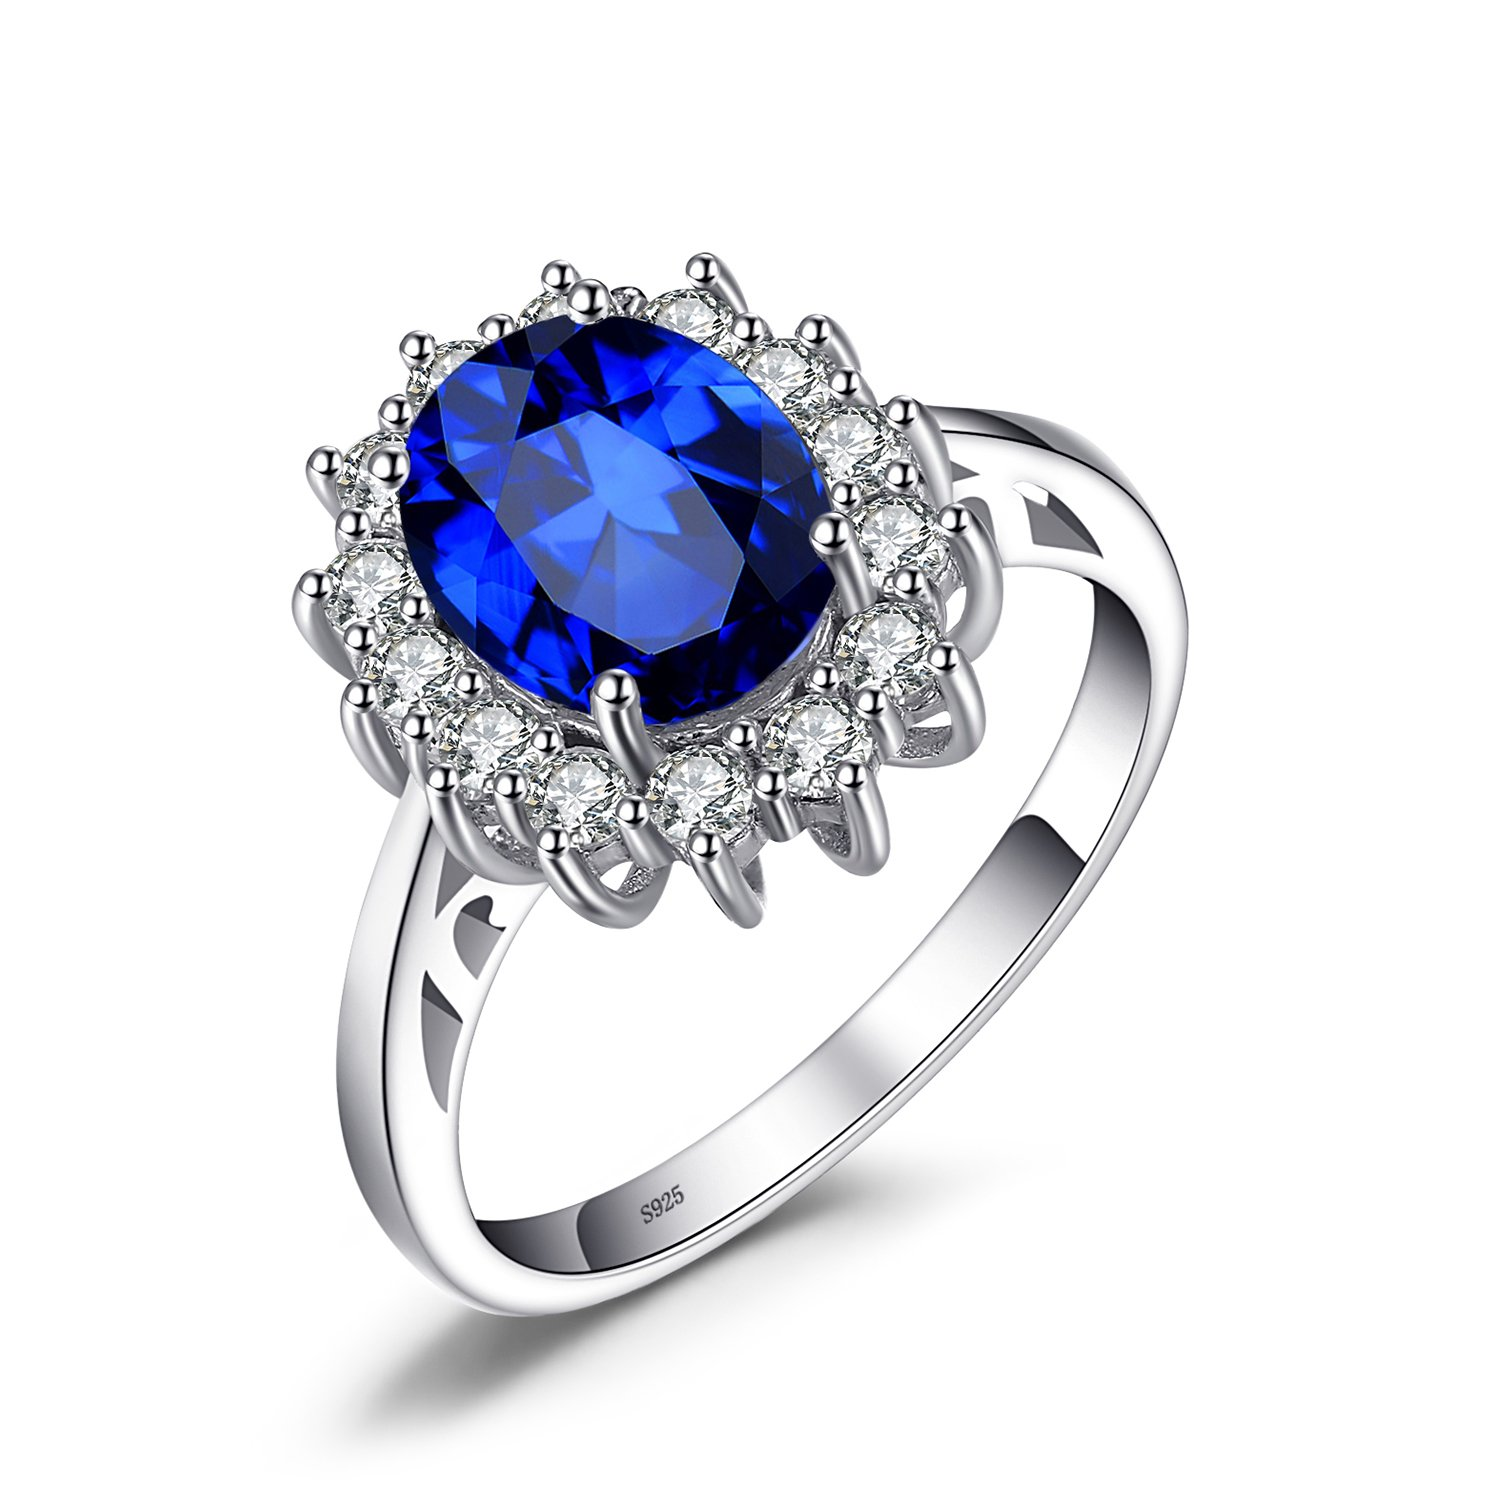 stone colourfade galleries sapphire blue wrapover mccaul goldsmiths diamond with engagement rings